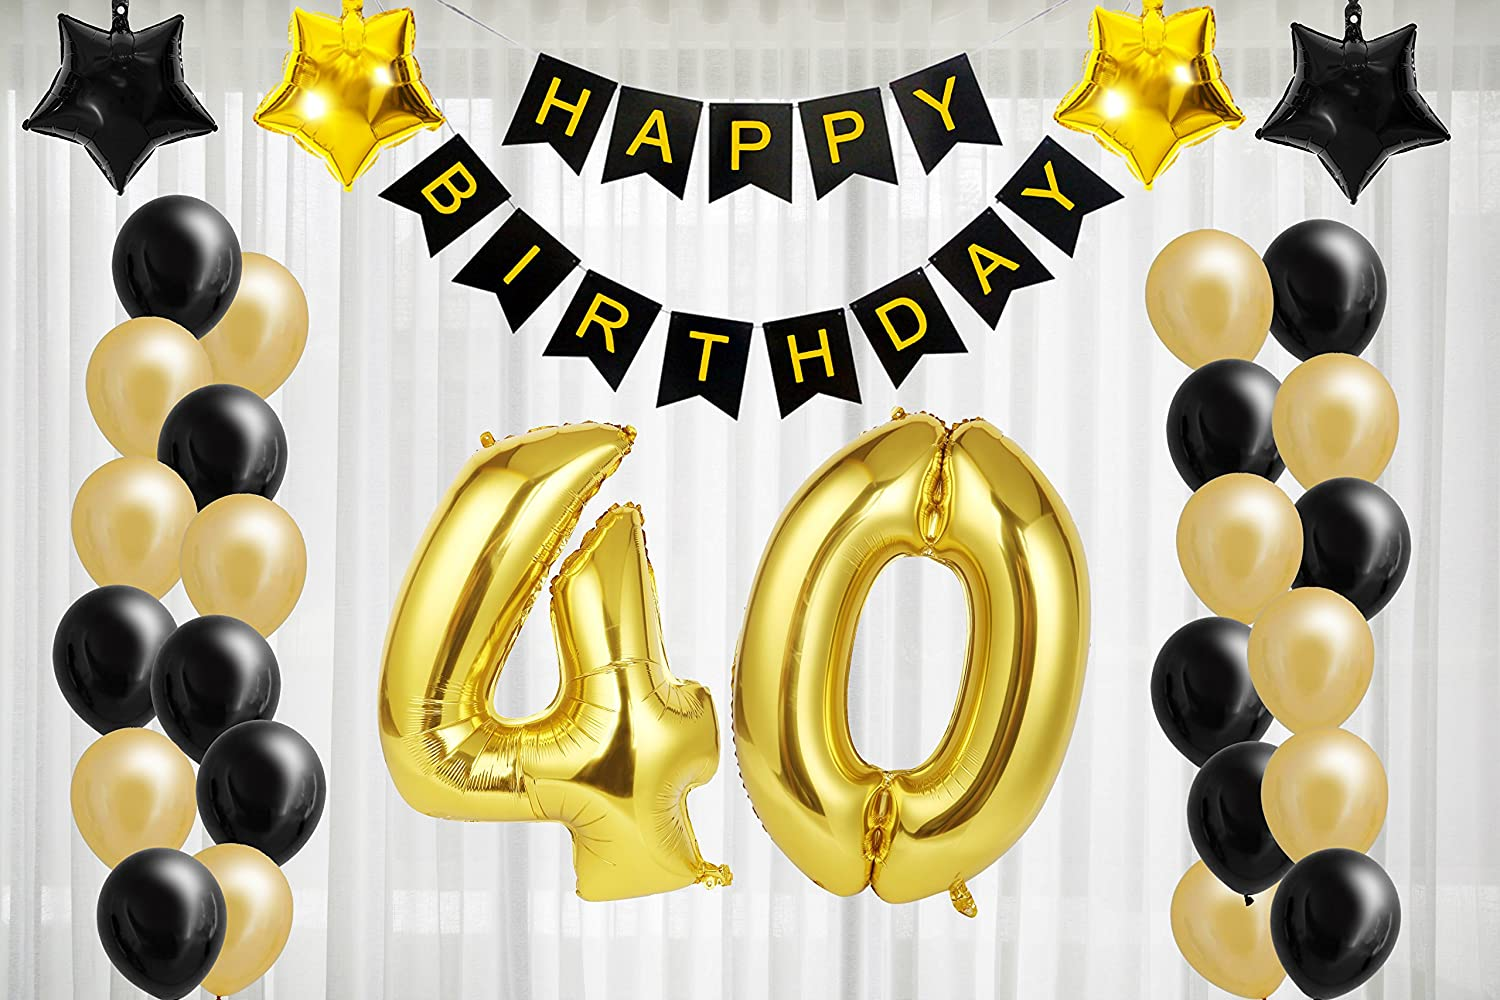 70th Birthday Party Decorations Hanging String Confetti Ceiling Room Wall Banner